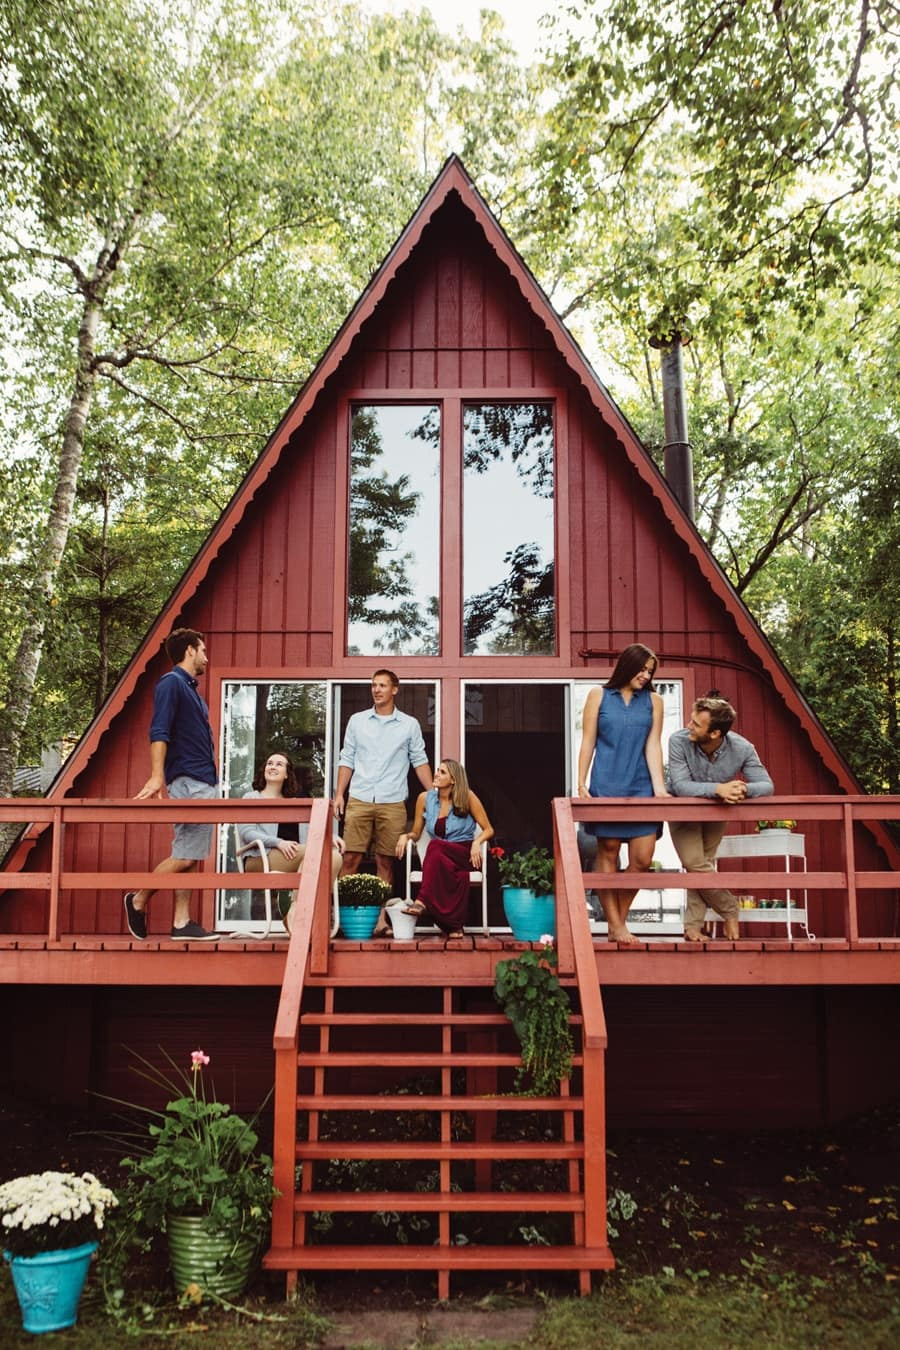 Darling A-Frame Homes For Rent in Northern Michigan